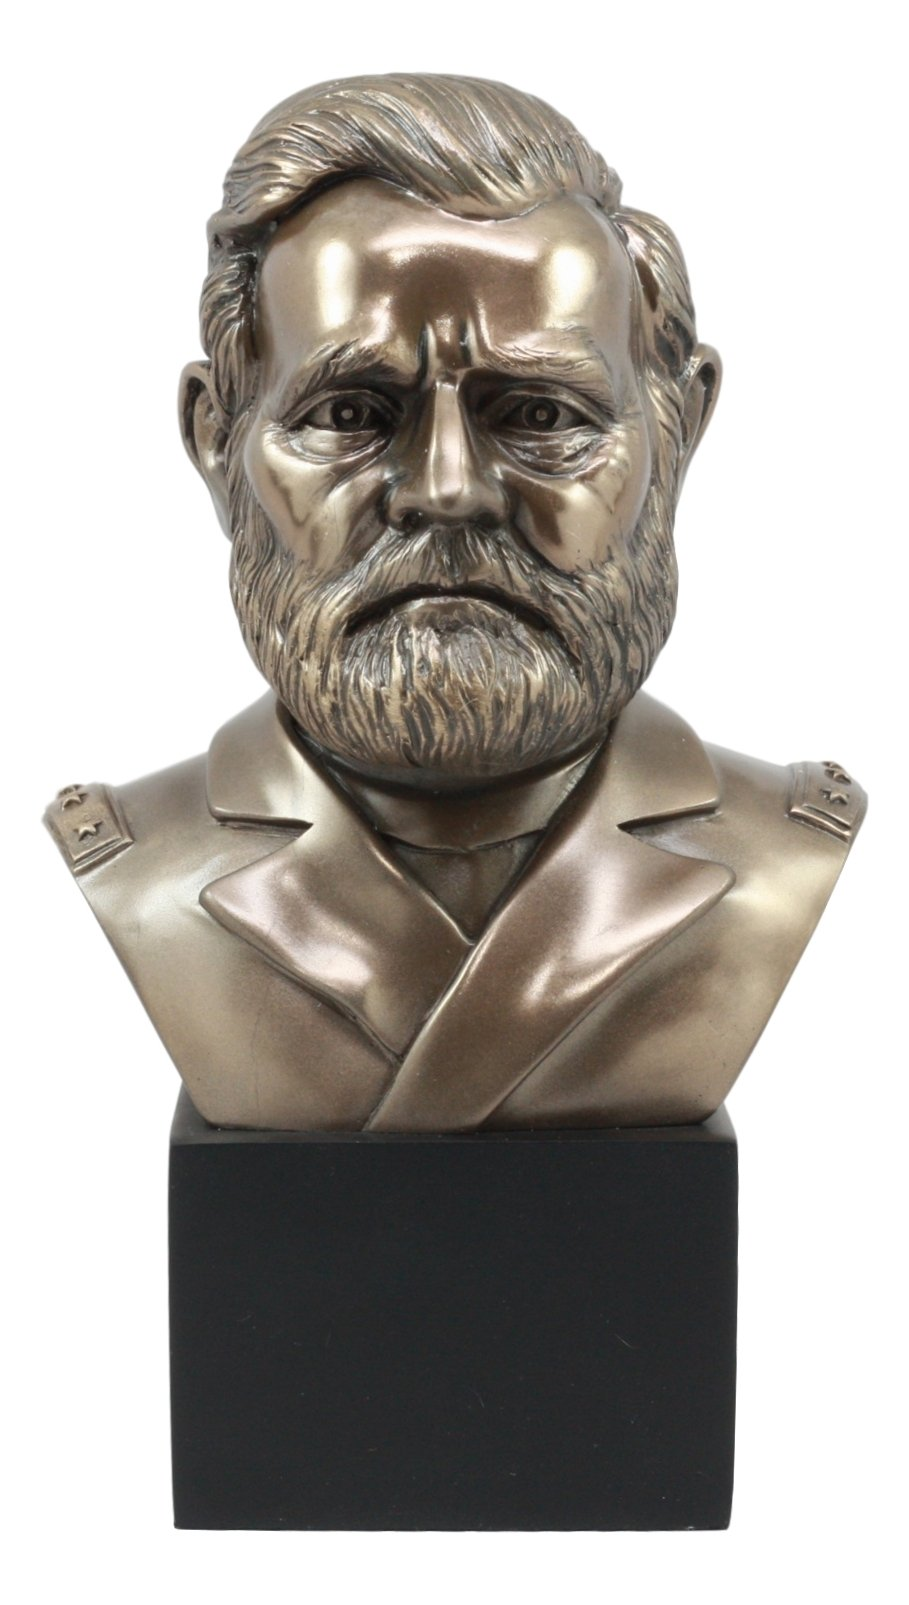 Ebros United States Of America 18th President Ulysses Grant Bust Statue 8.75 Inch Tall American Civil War General Patriotic Historical Figurine